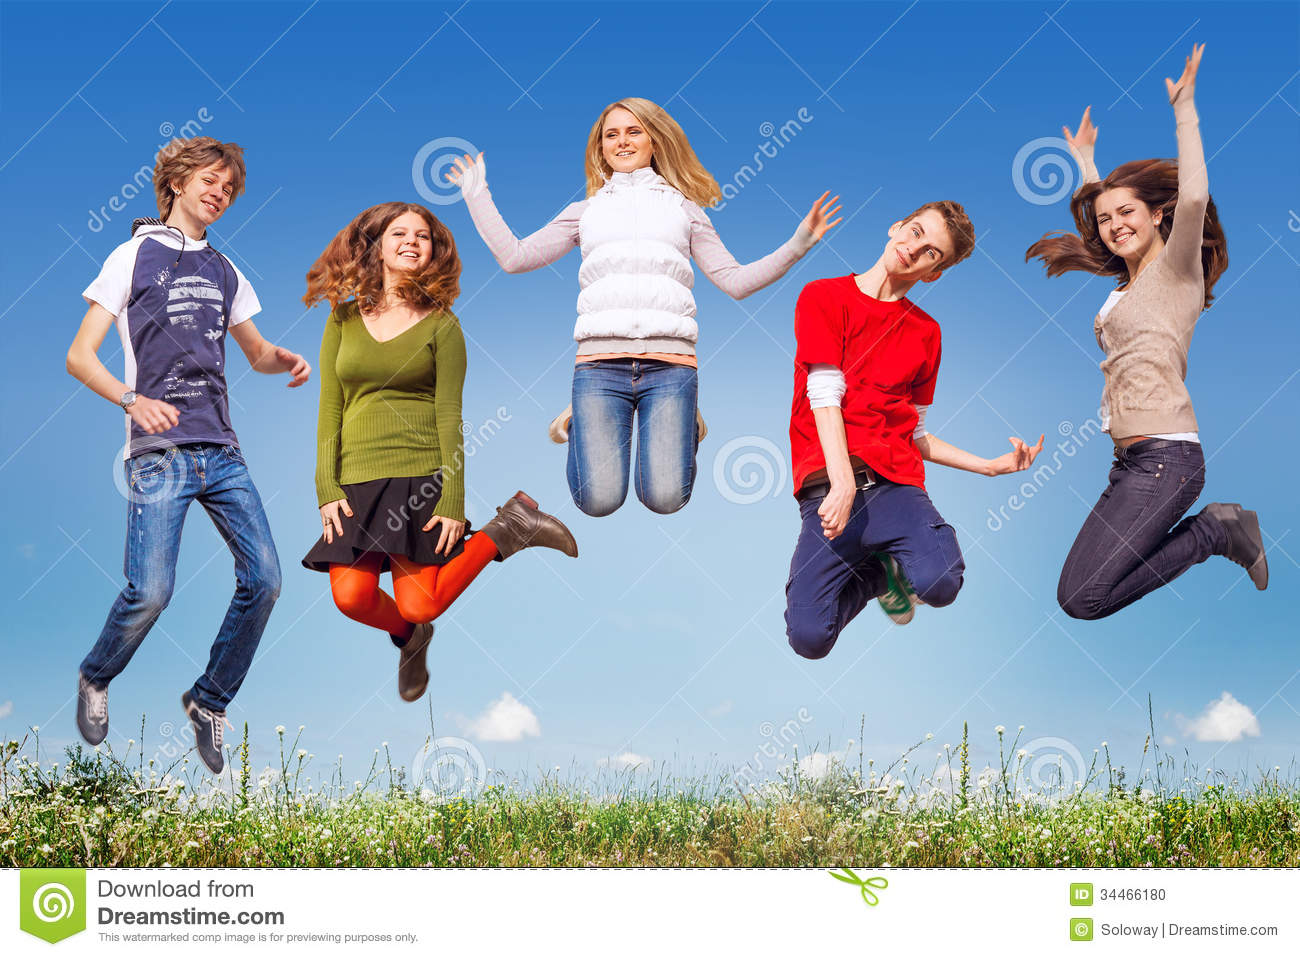 Group Of Teens Jumping In The Blue Sky Above The Green